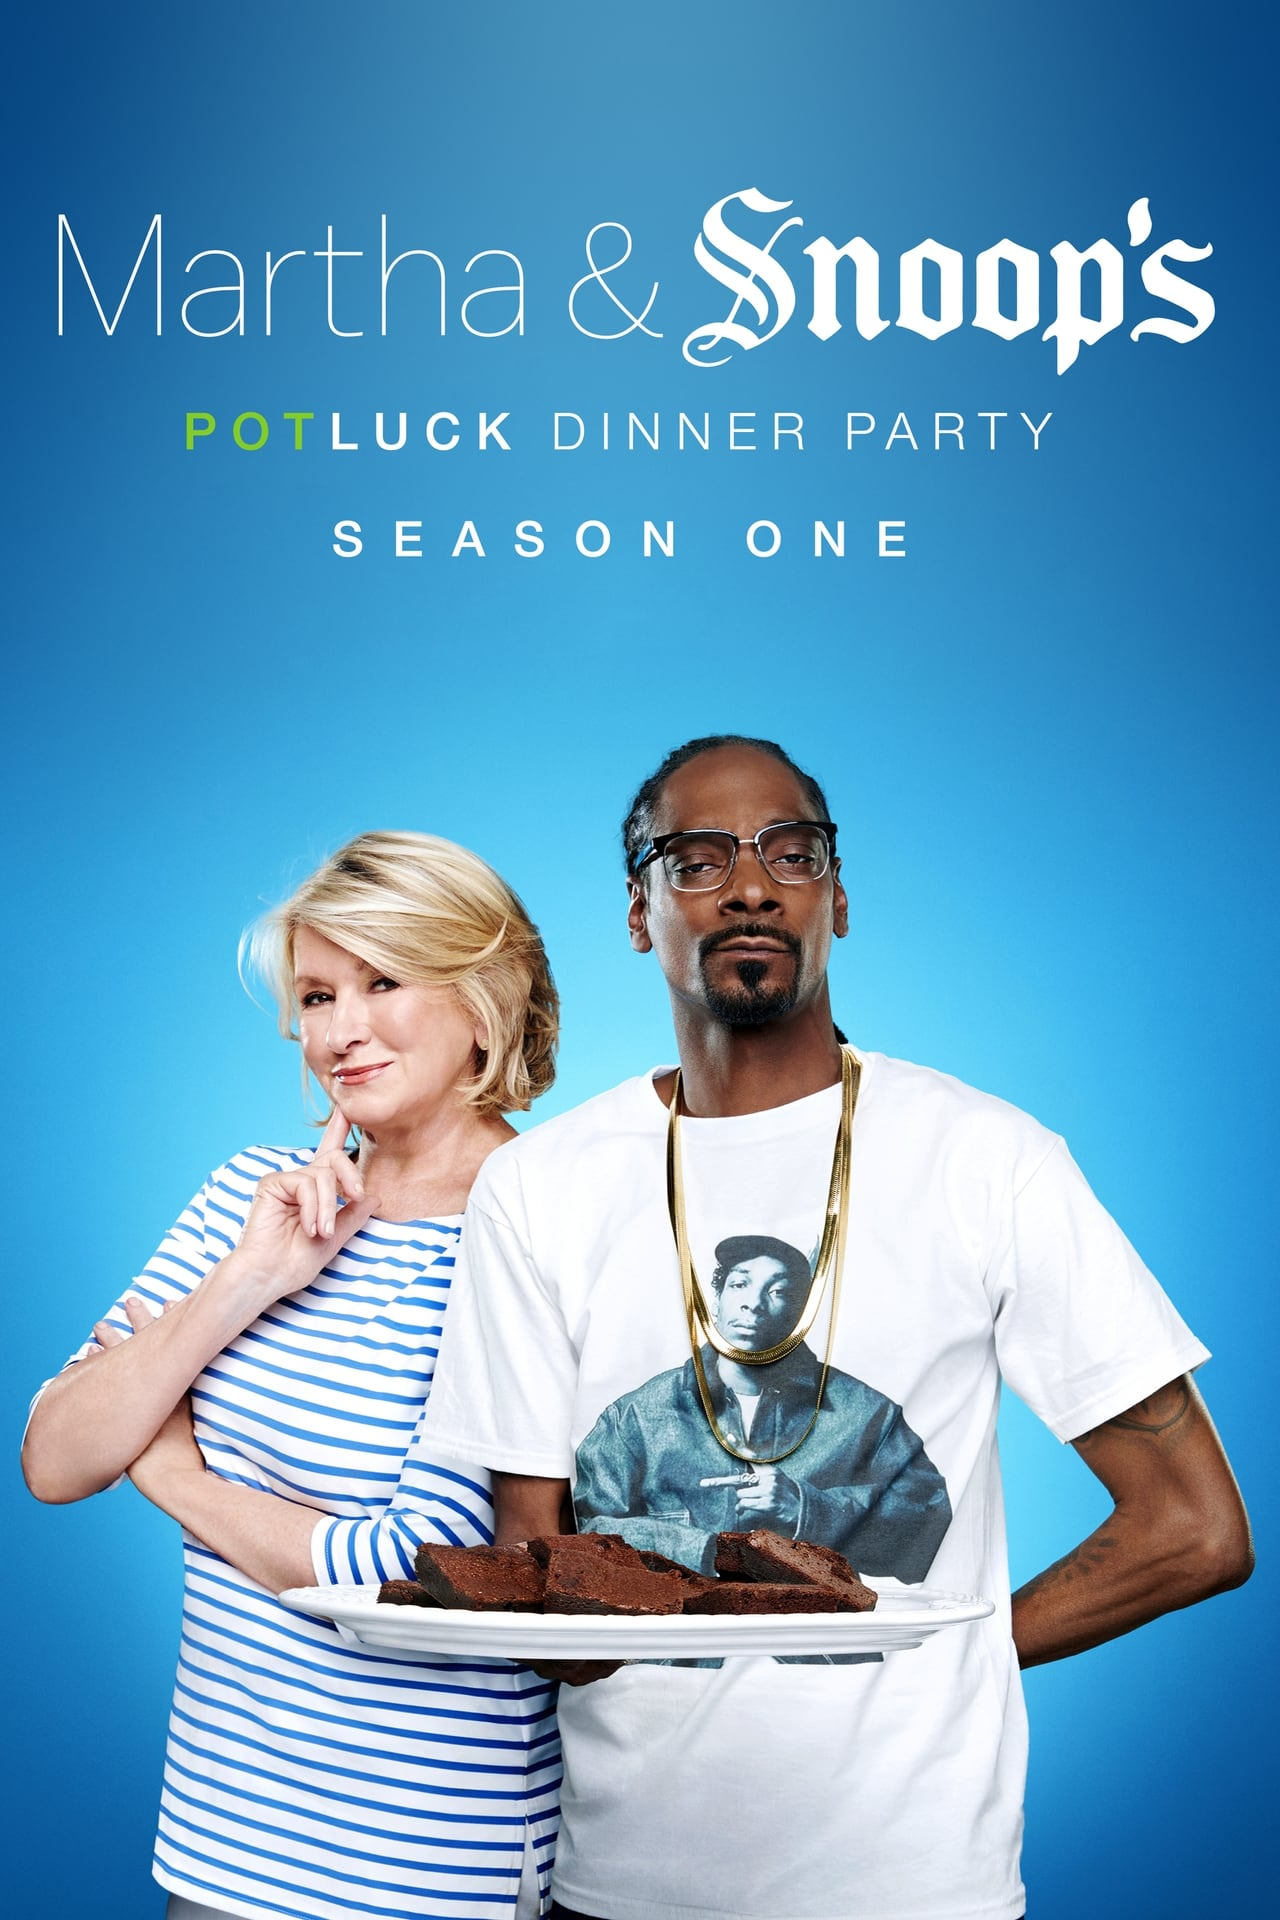 Martha & Snoop's Potluck Dinner Party Season 1